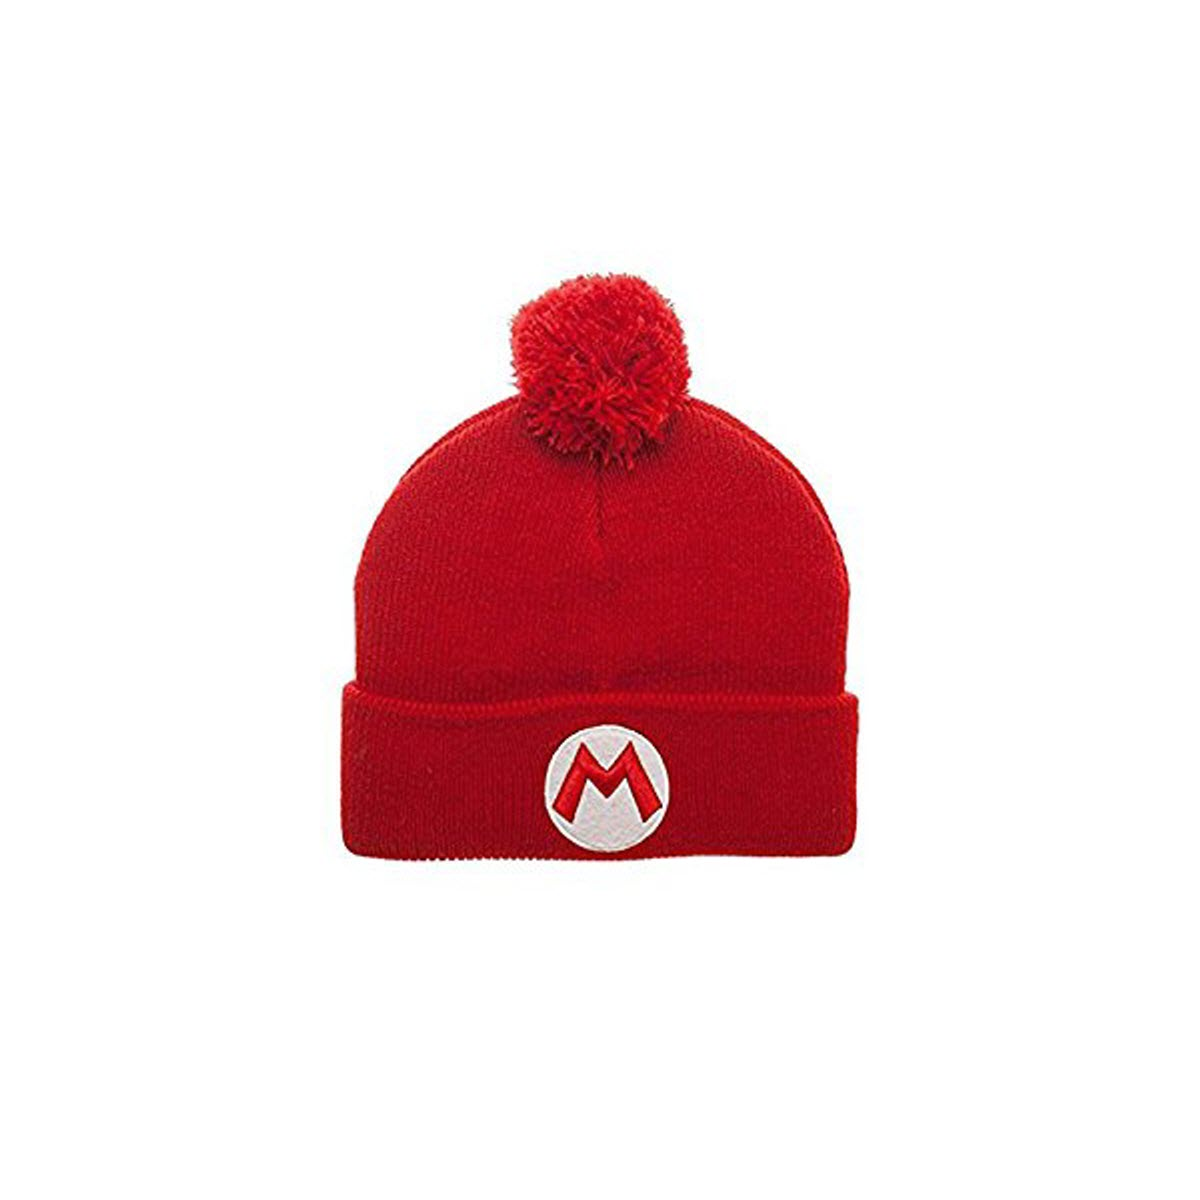 Super Mario Pom Beanie Brothers Nintendo NES Switch Wii Gift Knit ... d09e2394f3a